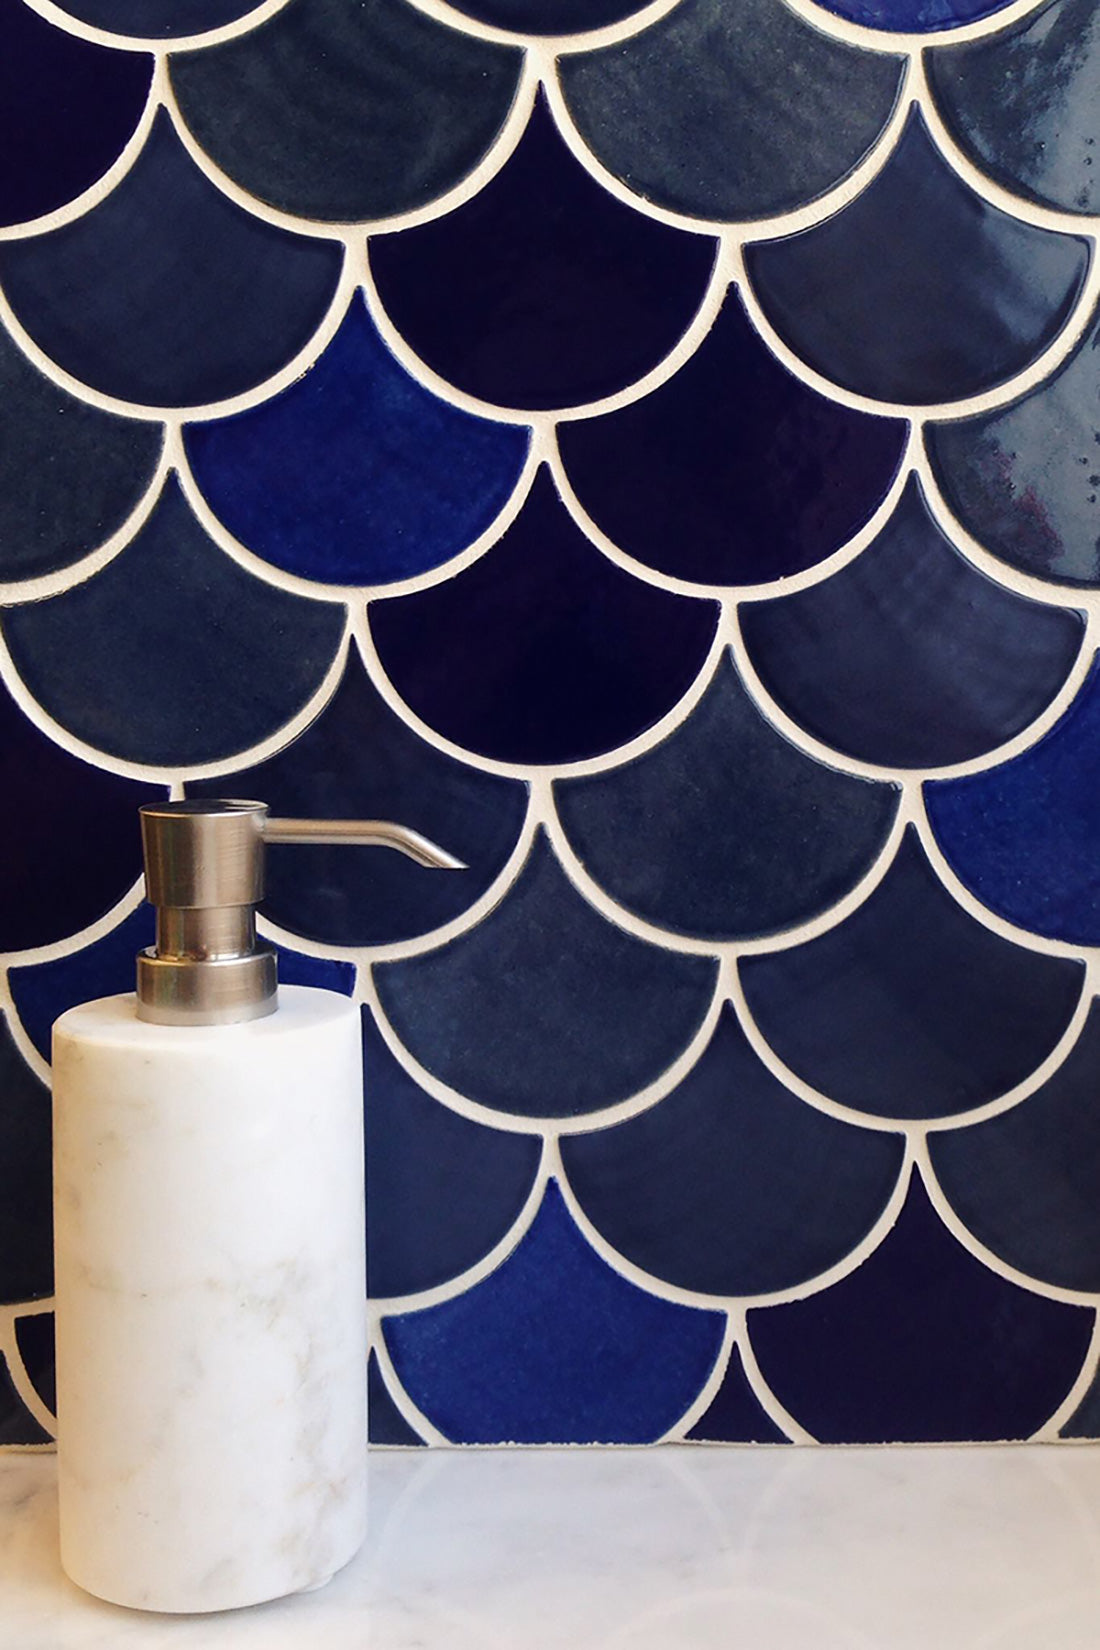 5-ways-to-create-a-dreamy-moroccan-space 5 Ways to Create a Dreamy Moroccan Escape All Bathrooms Kitchens Tile Inspiration   michellegage1 5 Ways to Create a Dreamy Moroccan Escape All Bathrooms Kitchens Tile Inspiration   Moroccan-Fish-Scales 5 Ways to Create a Dreamy Moroccan Escape All Bathrooms Kitchens Tile Inspiration